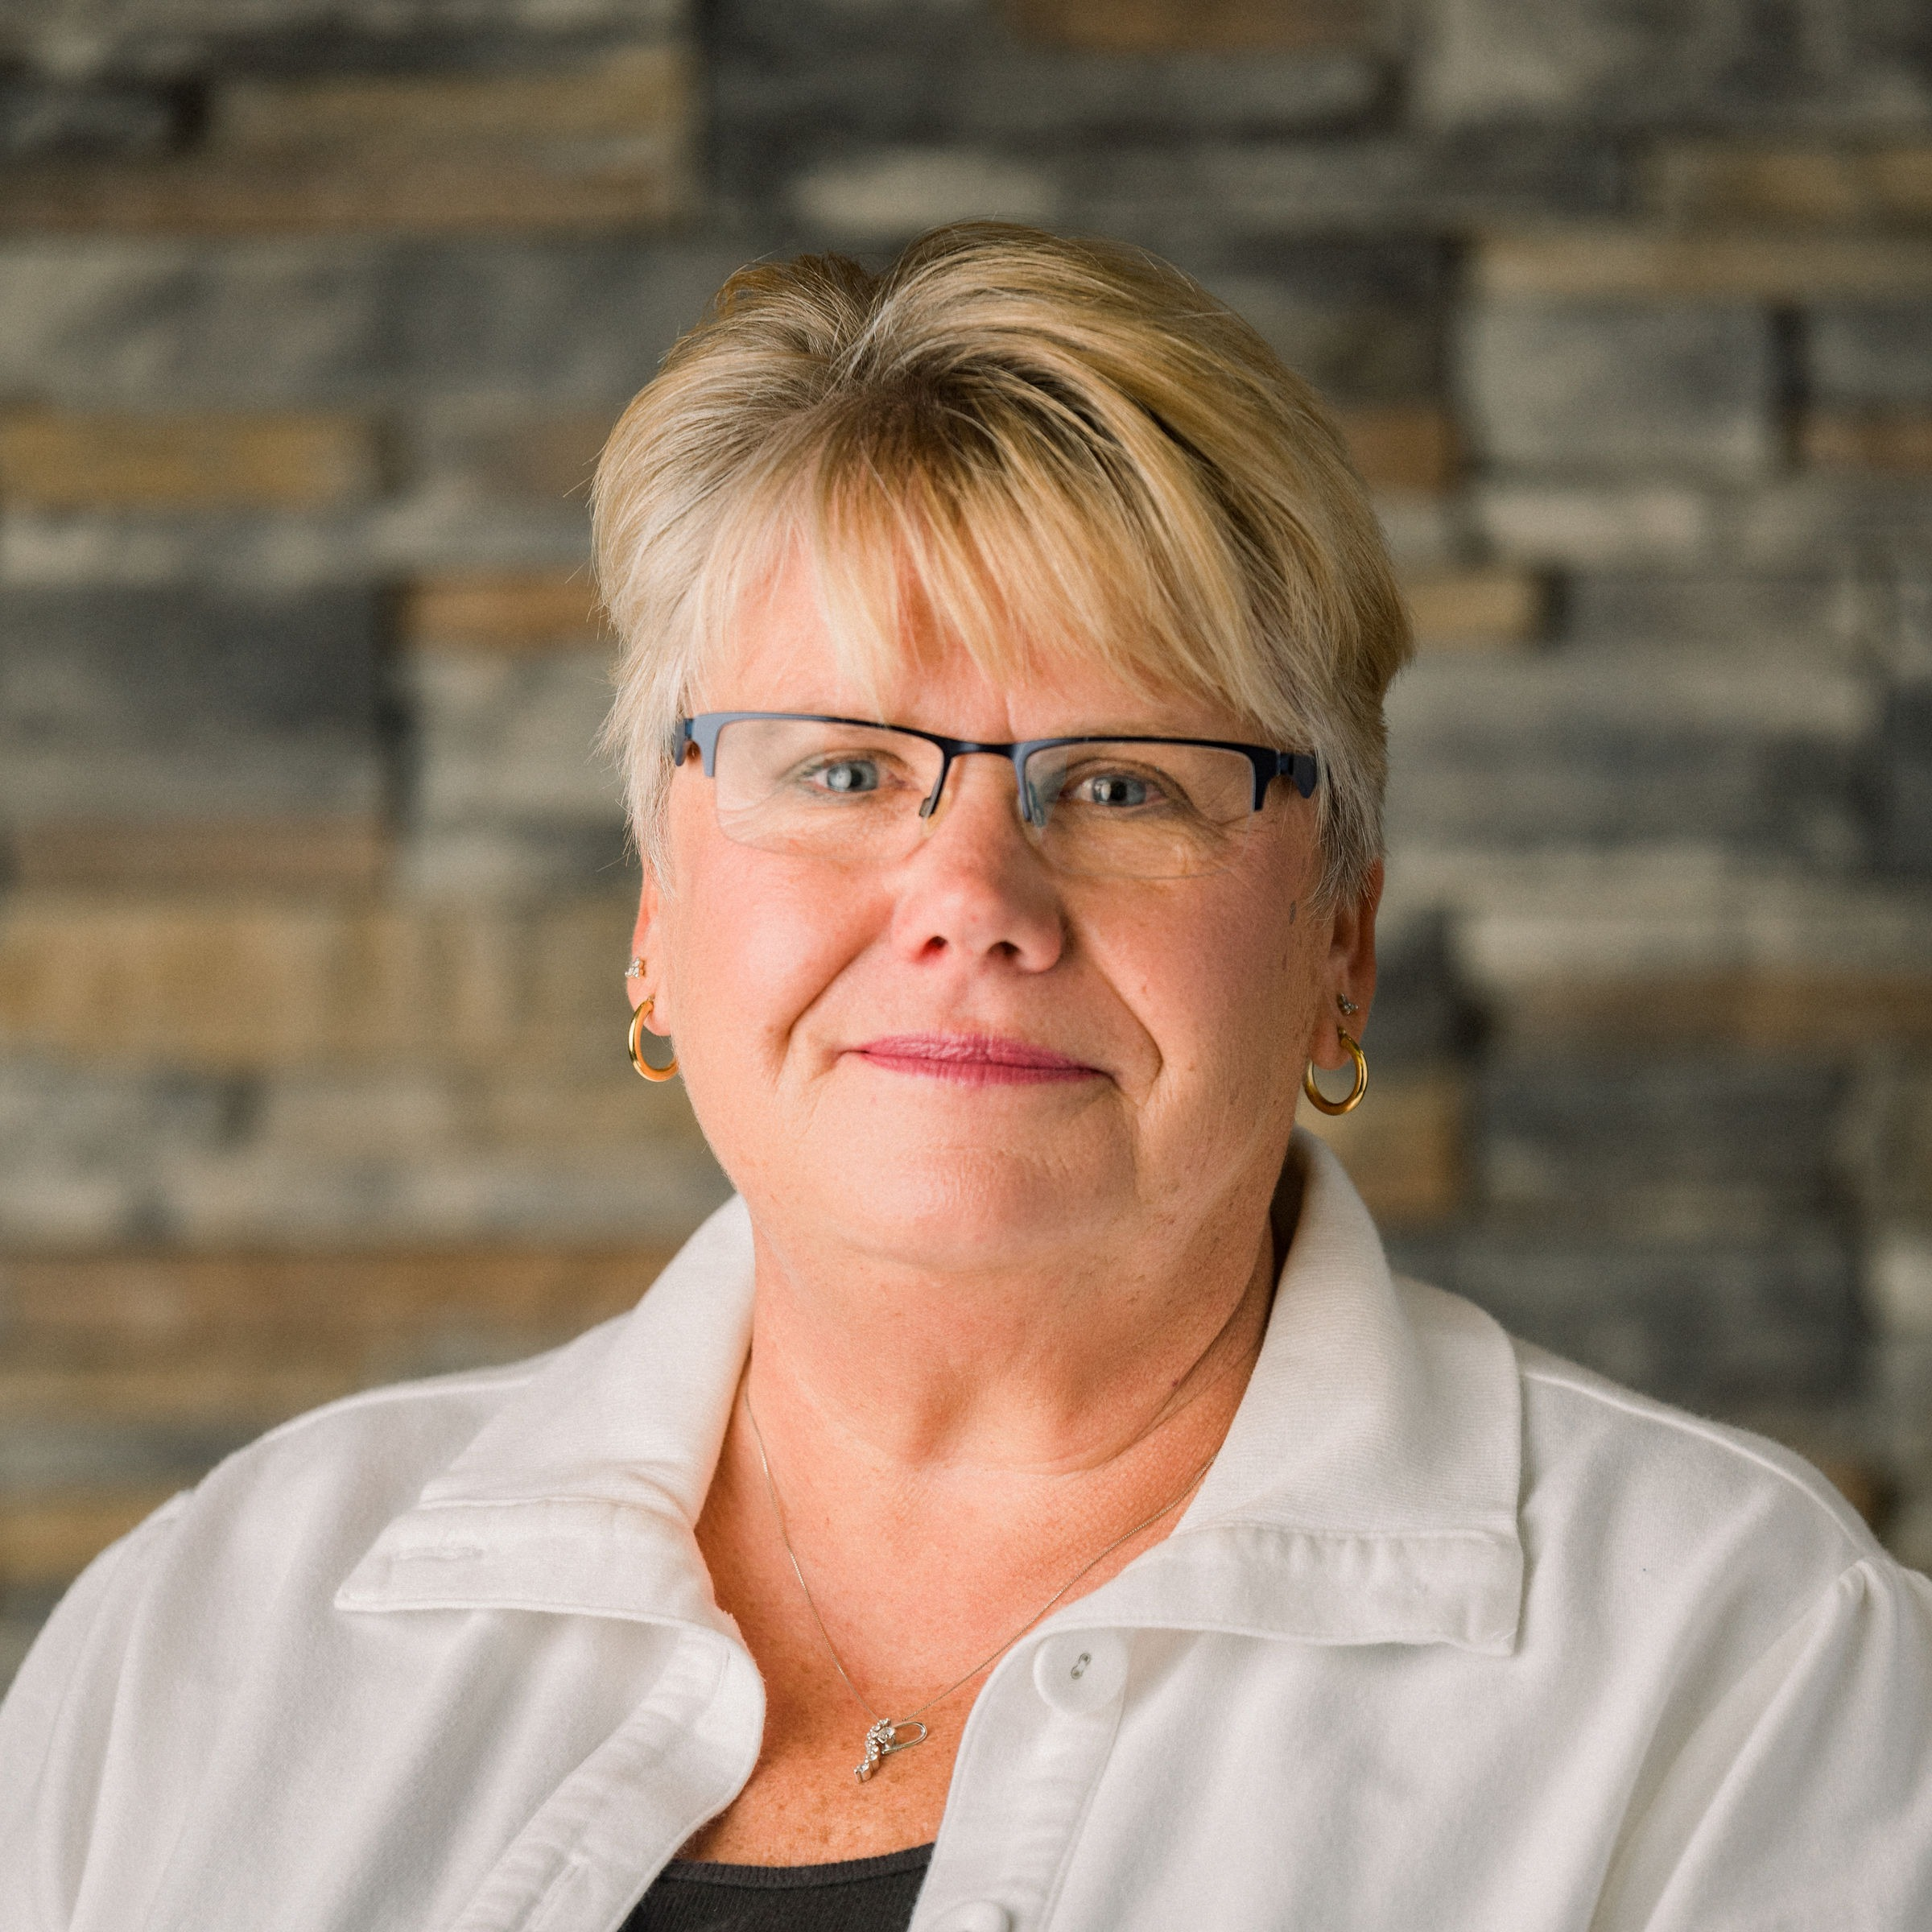 Paula C. of Orthodontic Specialty Services